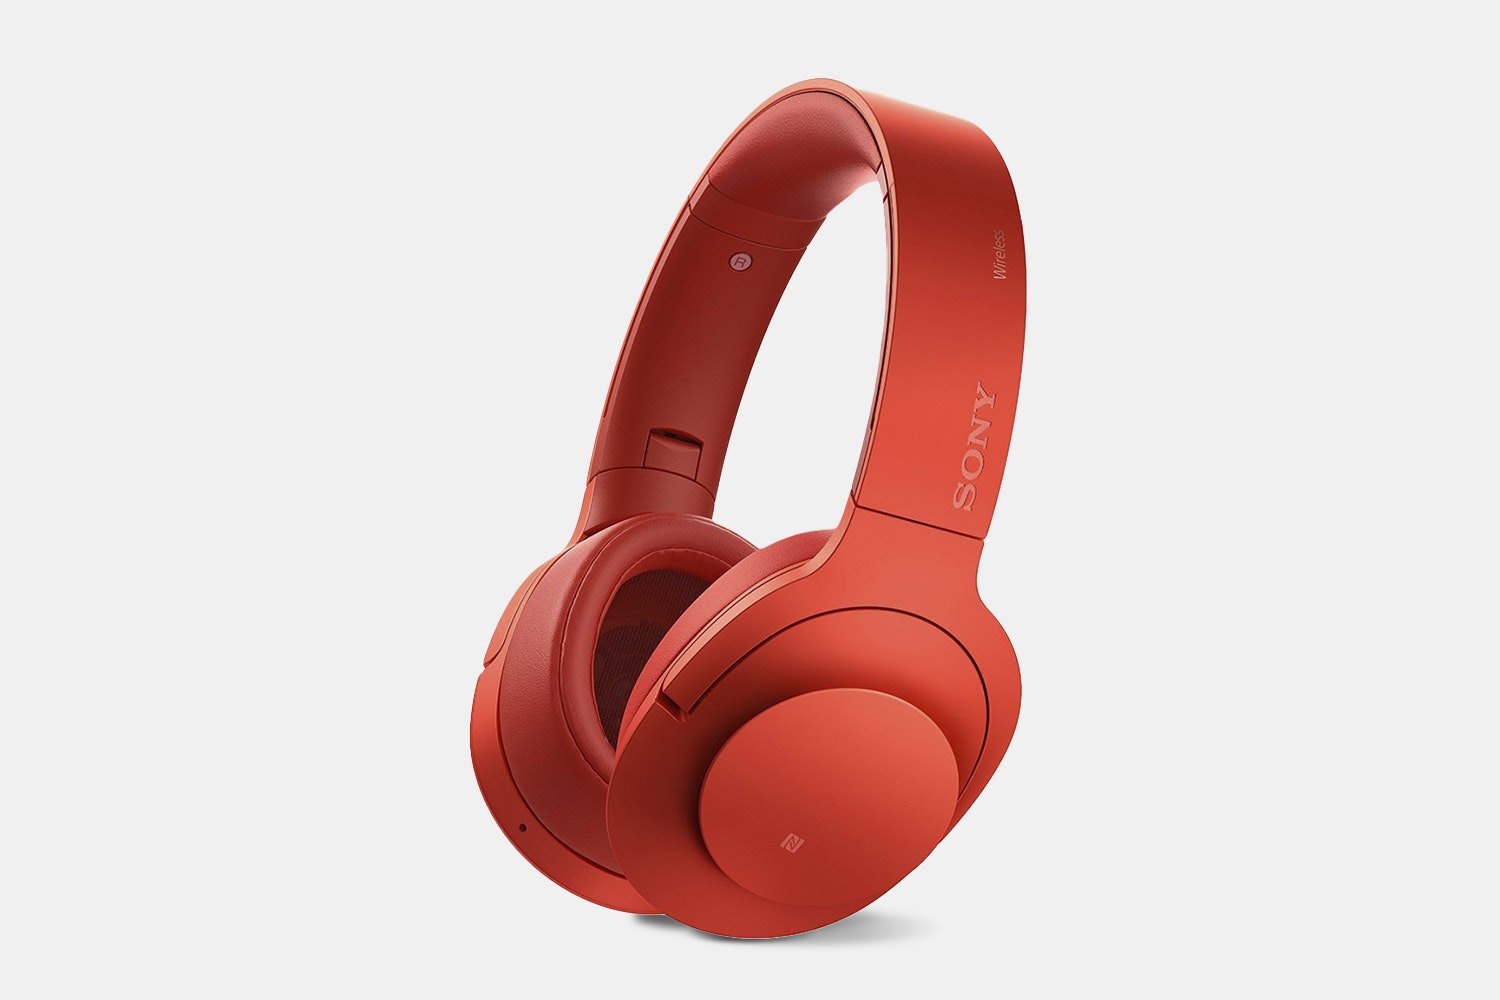 Sony MDR100ABN Wireless Noise-Canceling Headphones